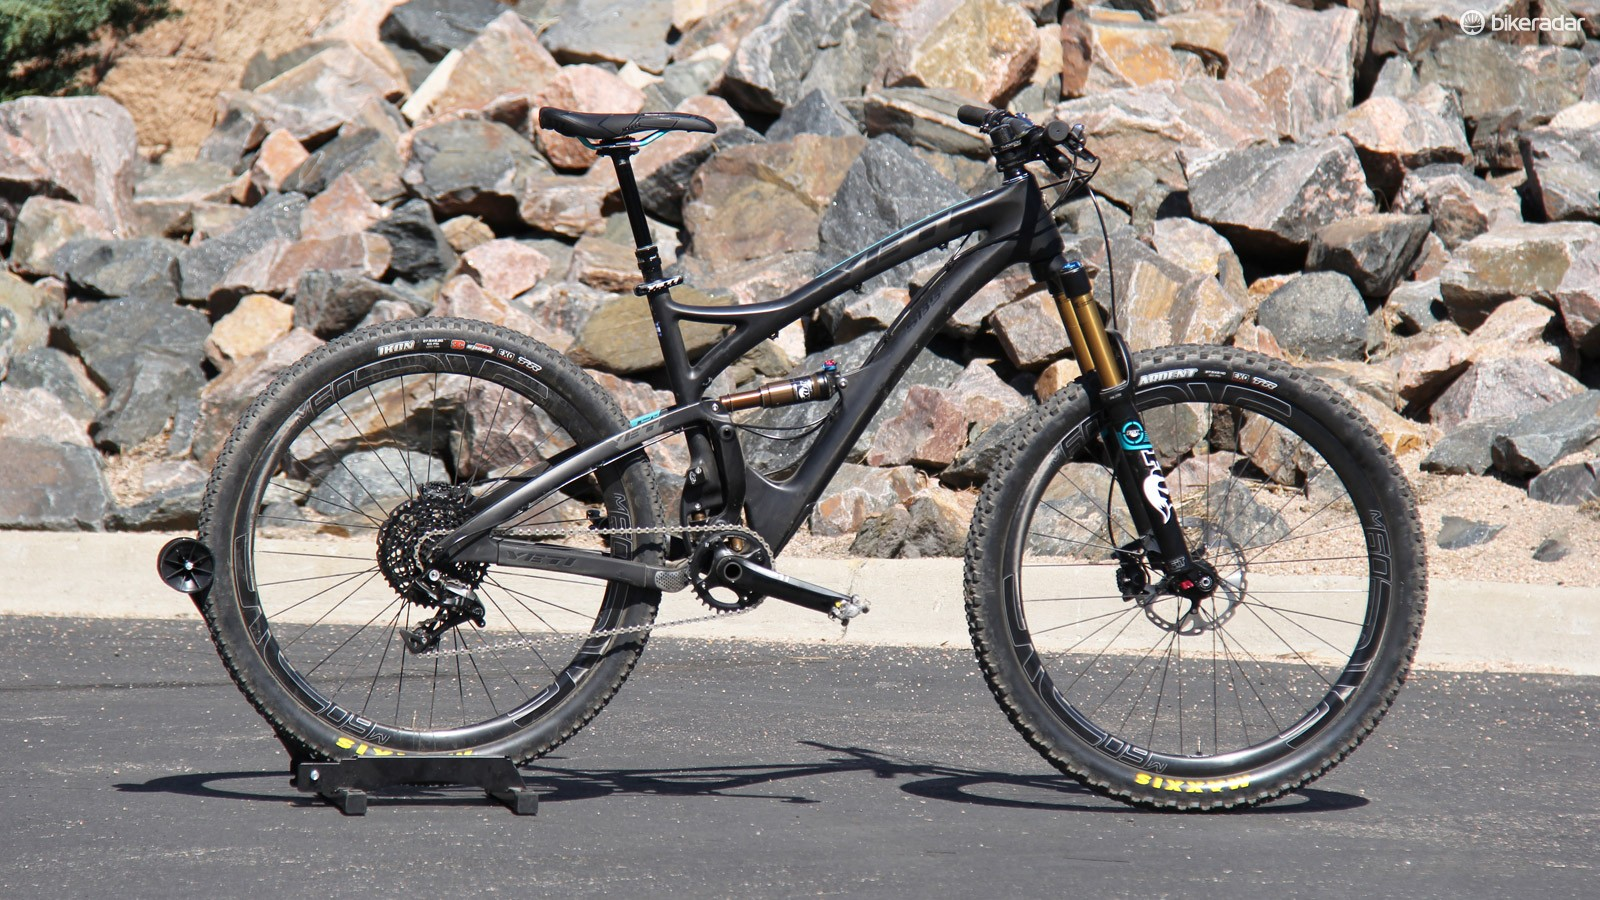 Yeti has just released the SB5c, a 27.5in carbon trail bike built around a new suspension system